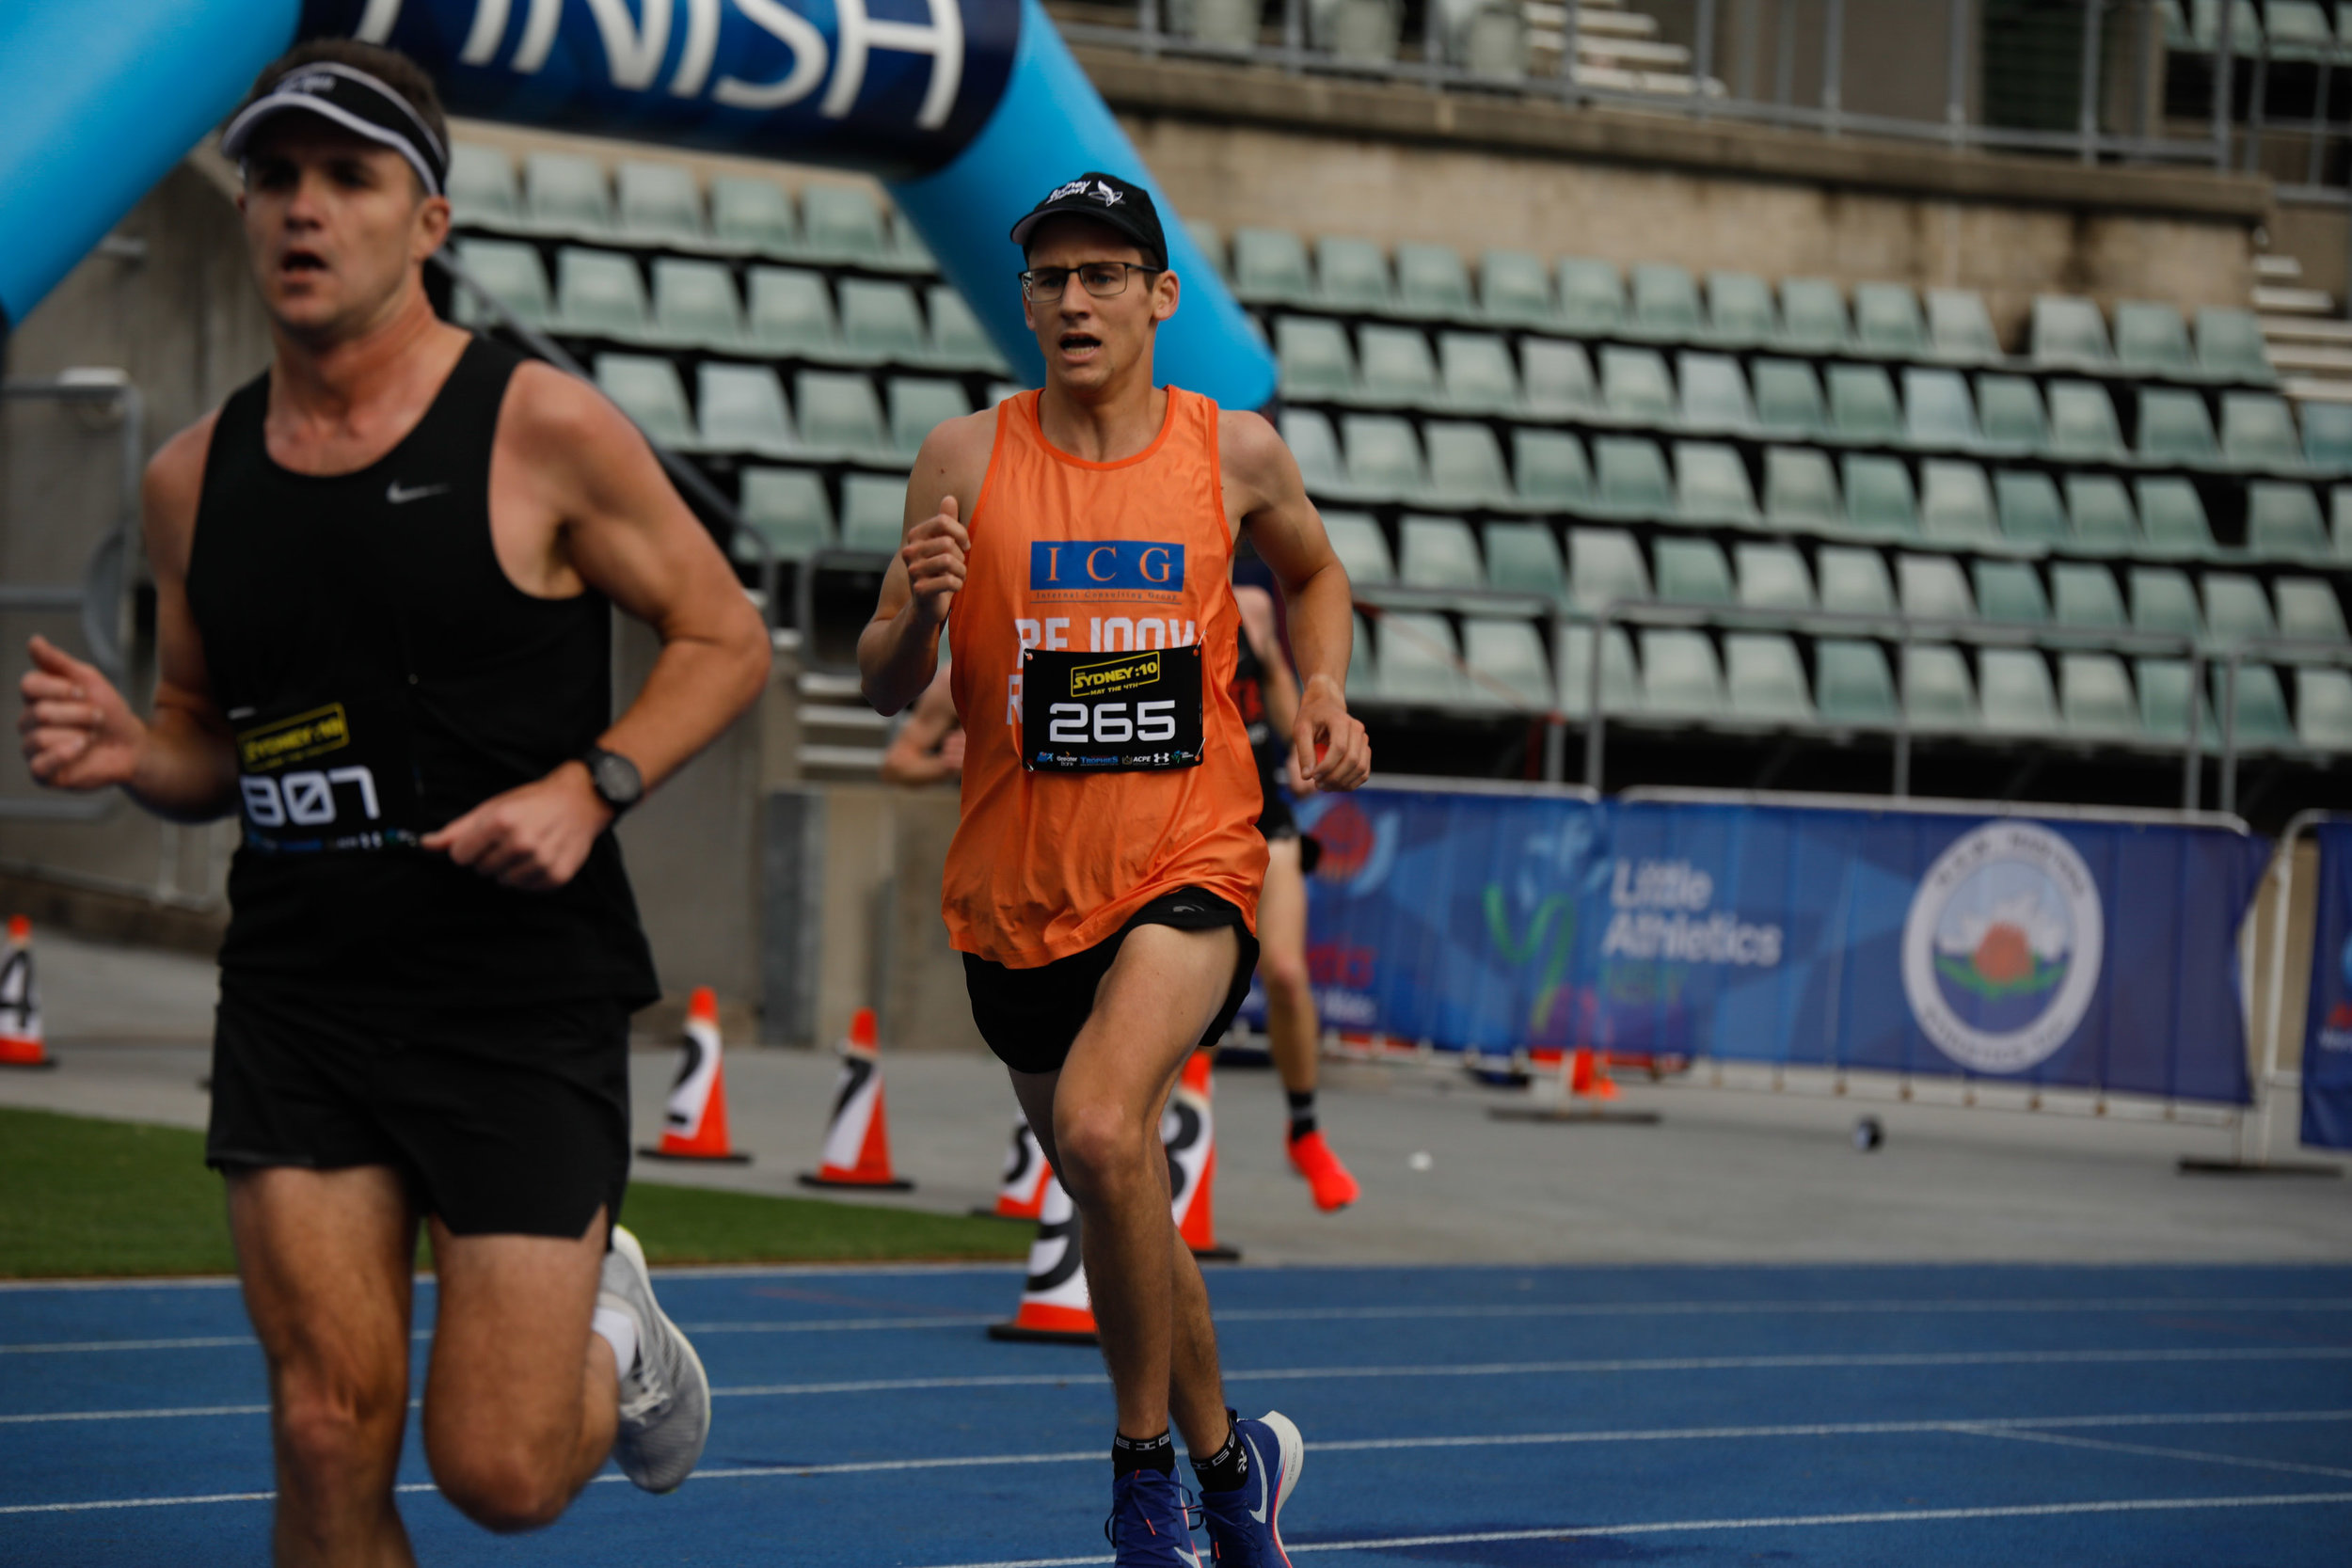 33:44 PB Sydney 10k 4/5/19 Dom Bullock coming onto the track sprint finish off of the road course, about to overtake Brendan Fehon in black